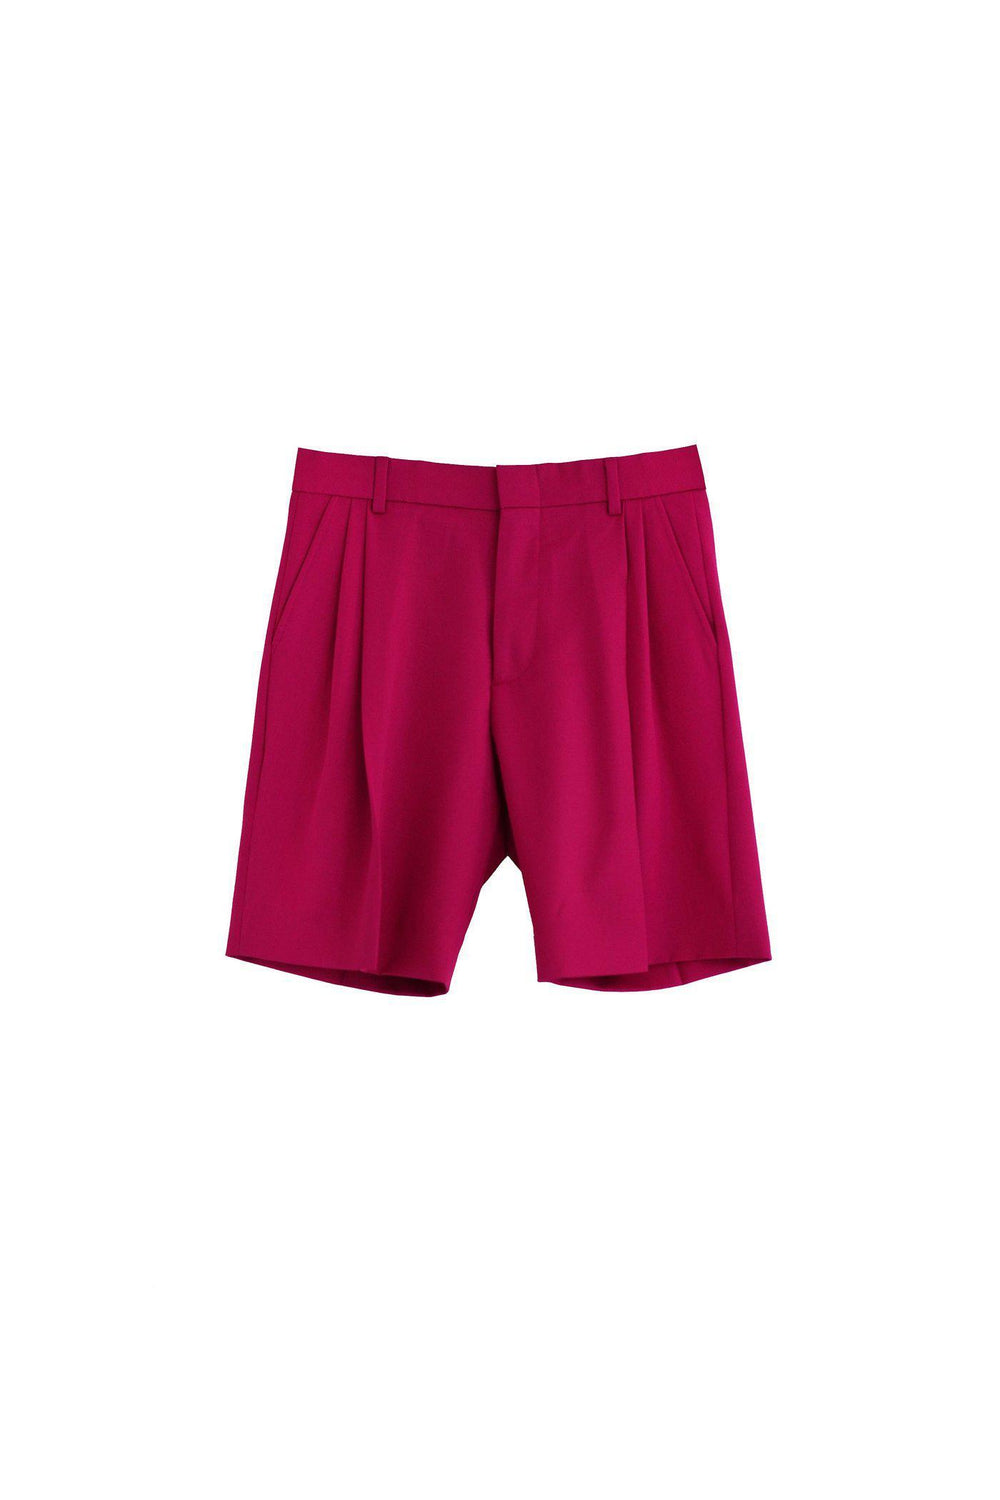 RYAN ROCHE Wool gabardine tailored boy short in lipstick pink